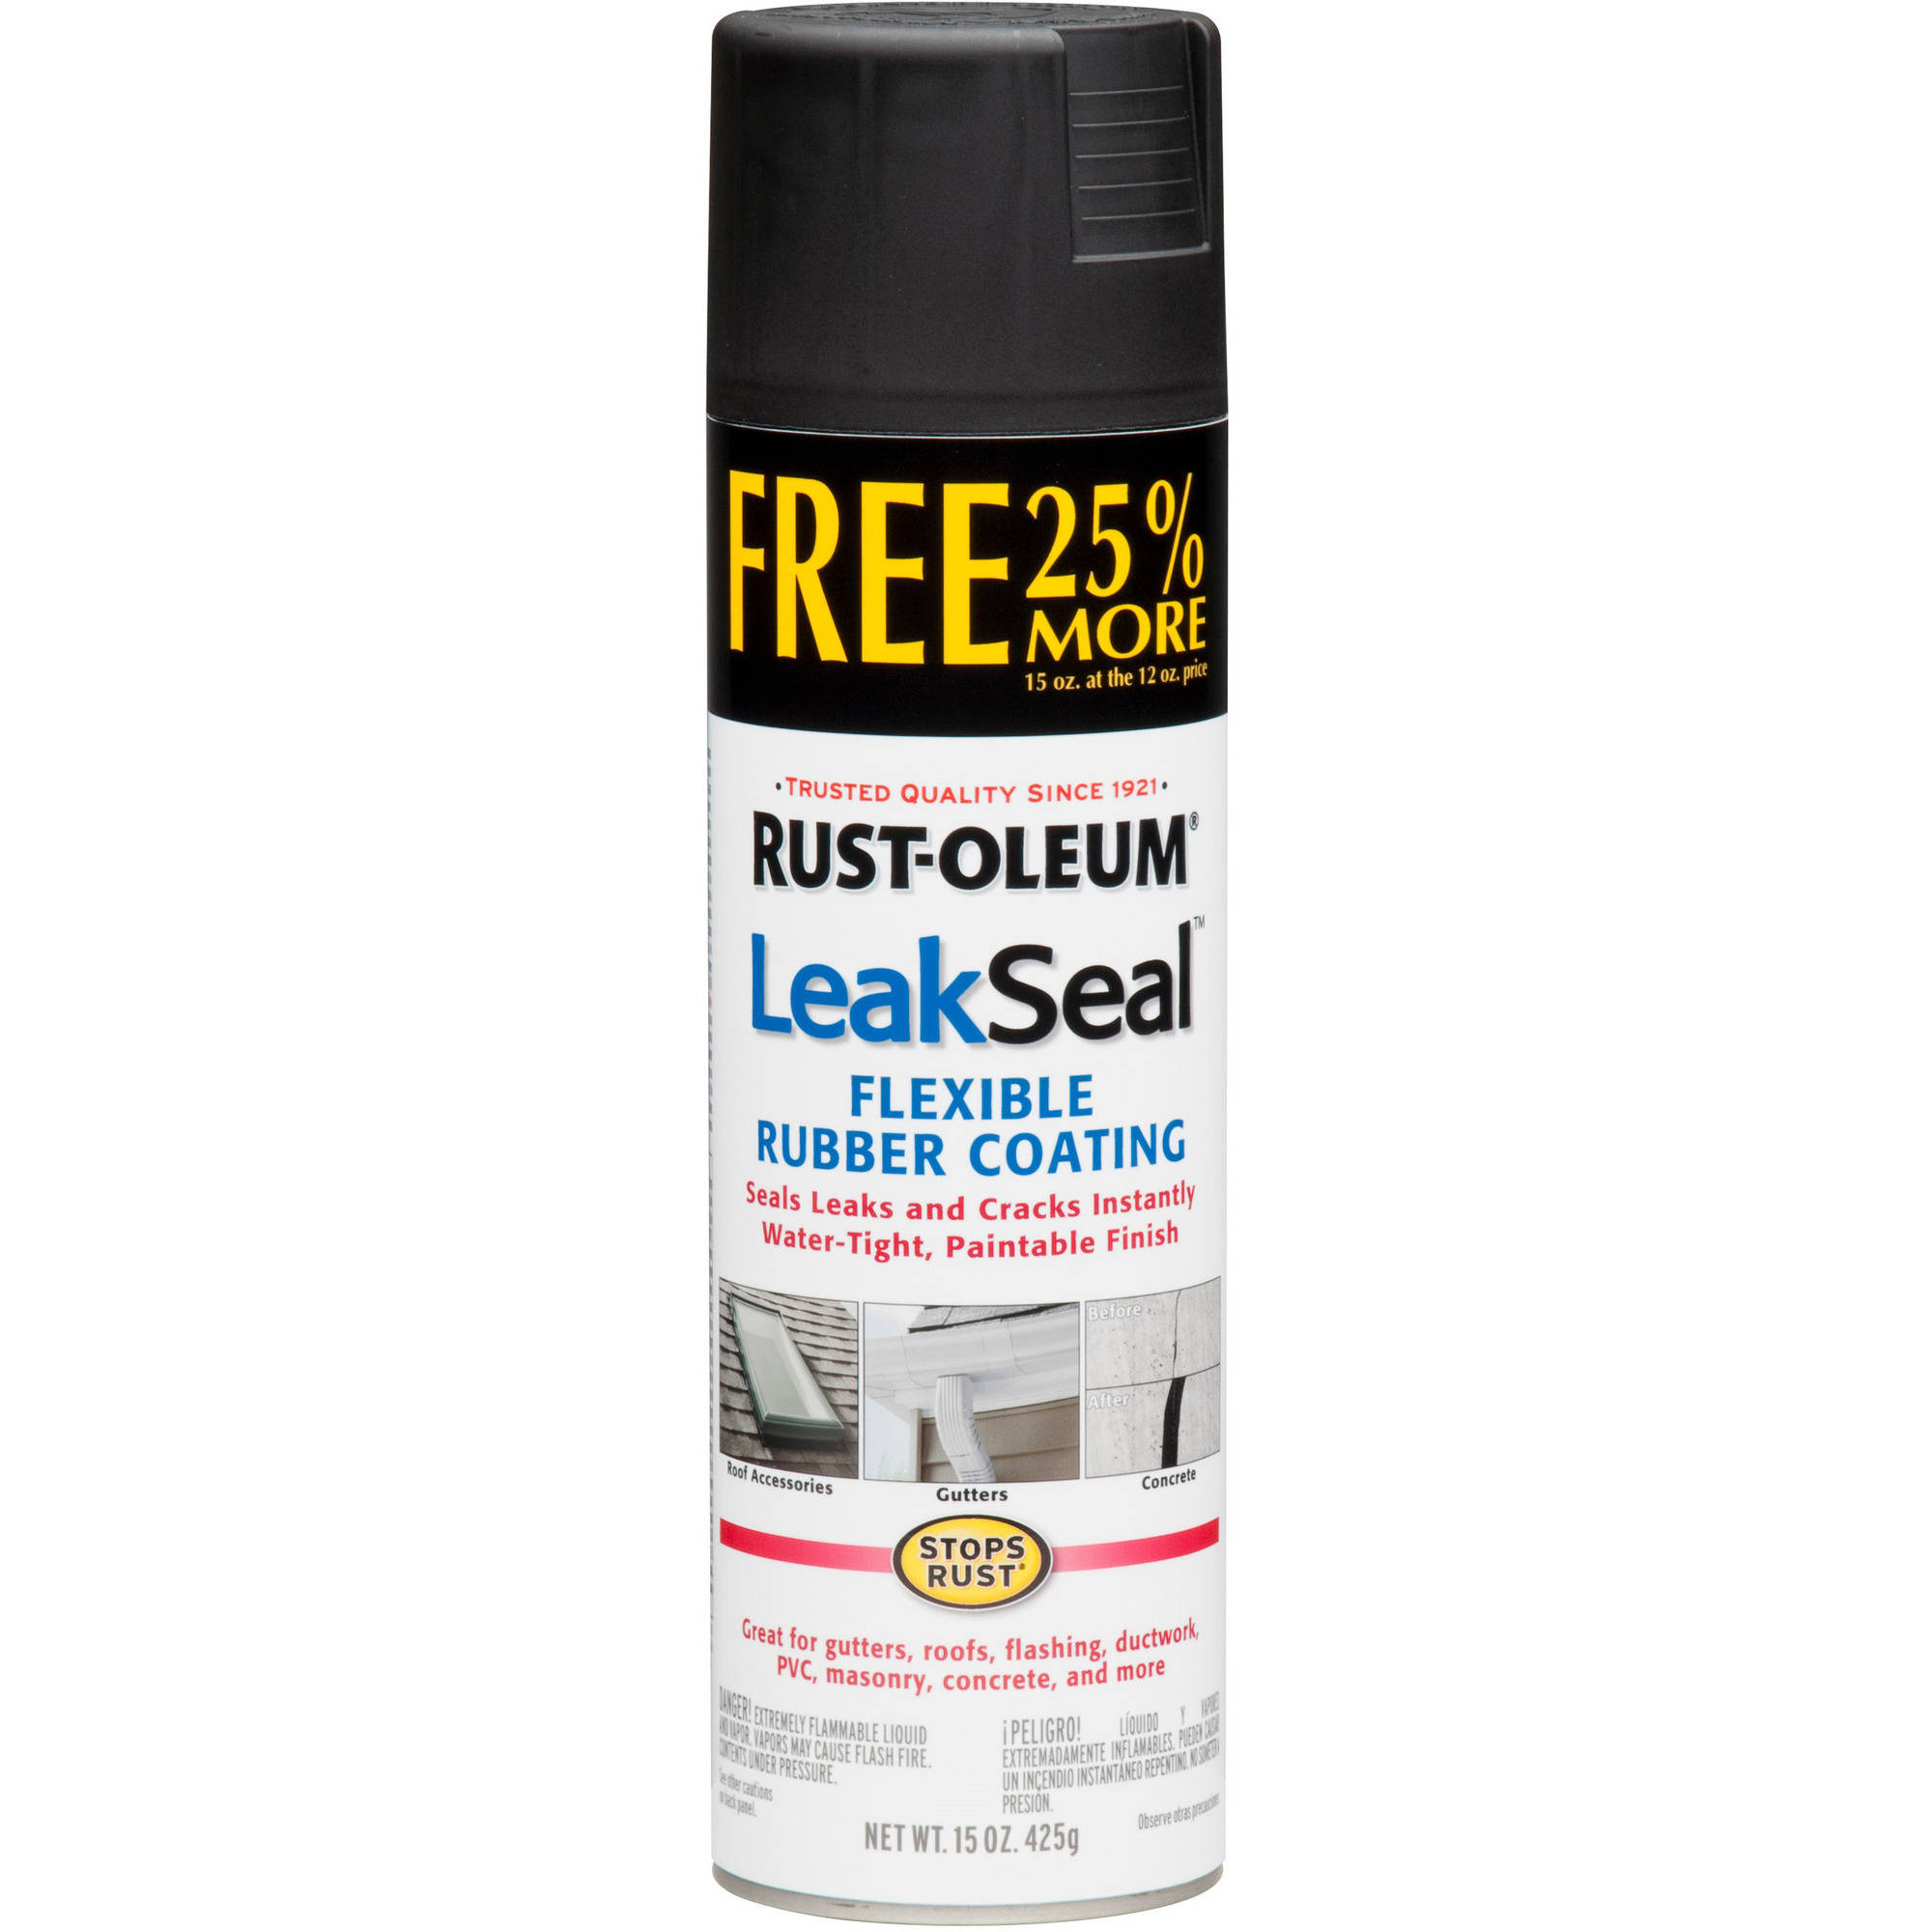 Rust-Oleum LeakSeal Spray, 15 oz